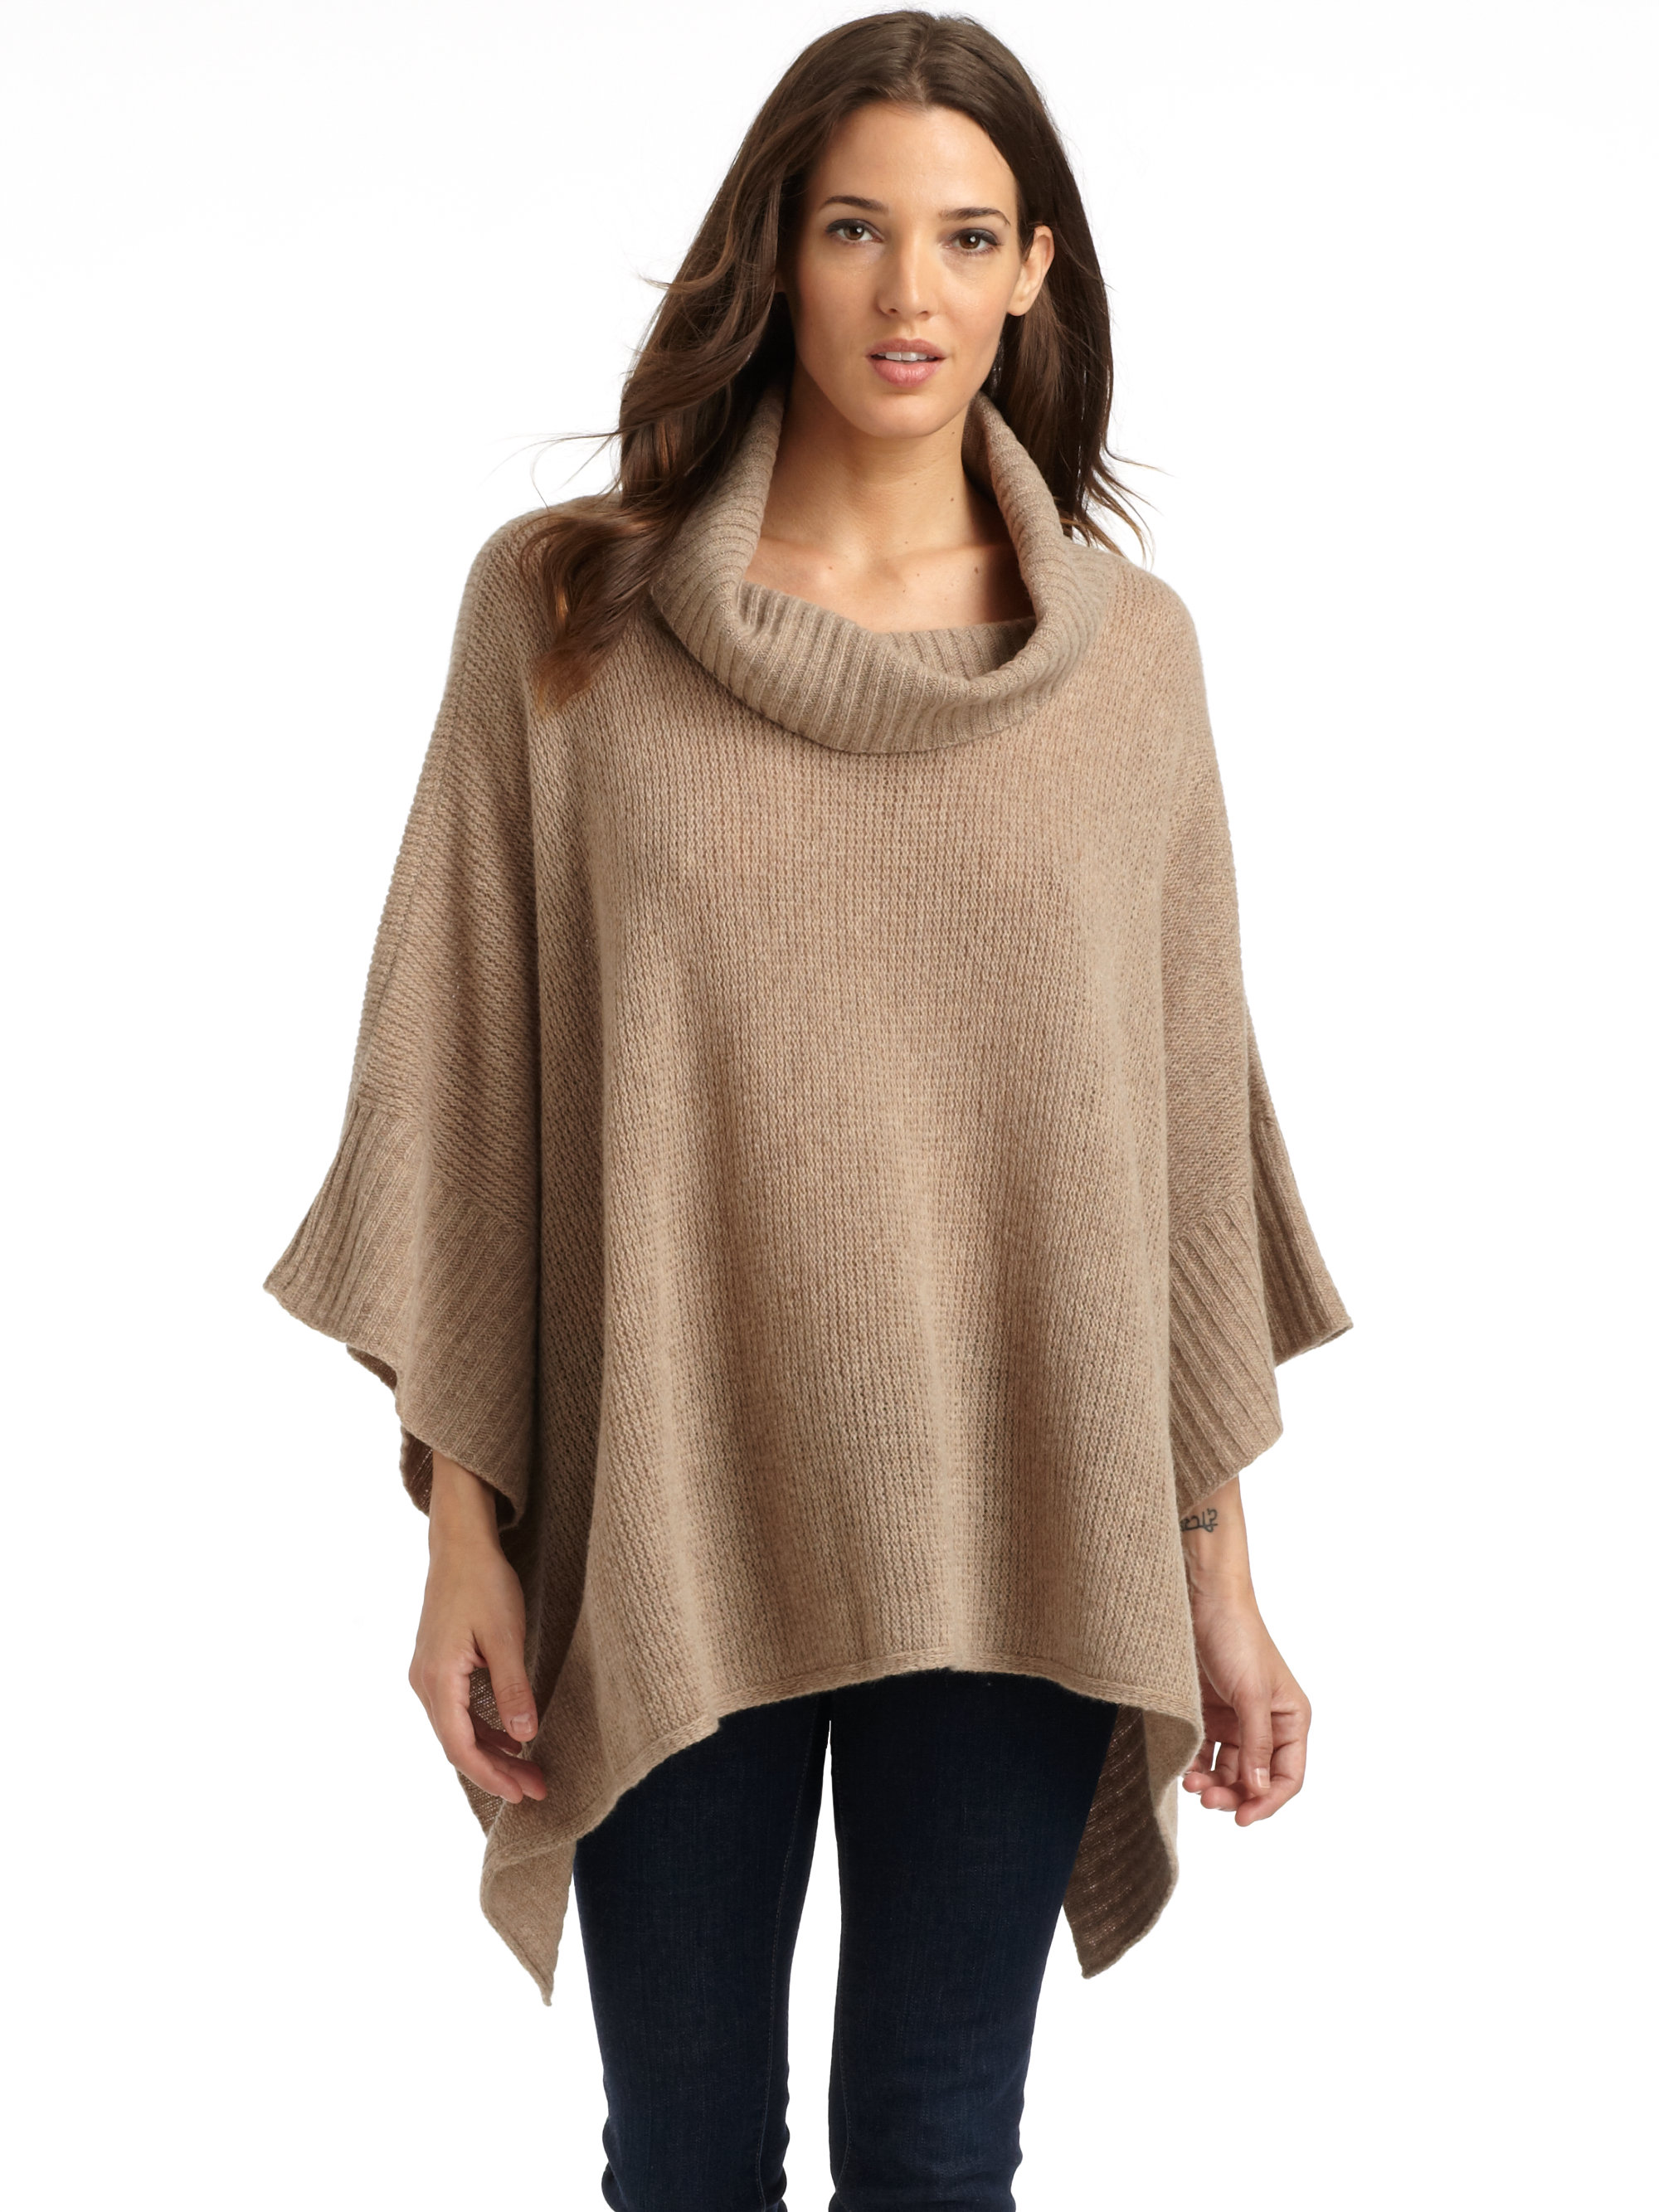 Shop ponchos, capes & wraps at palmmetrf1.ga Discover a stylish selection of the latest brand name and designer fashions all at a great value.